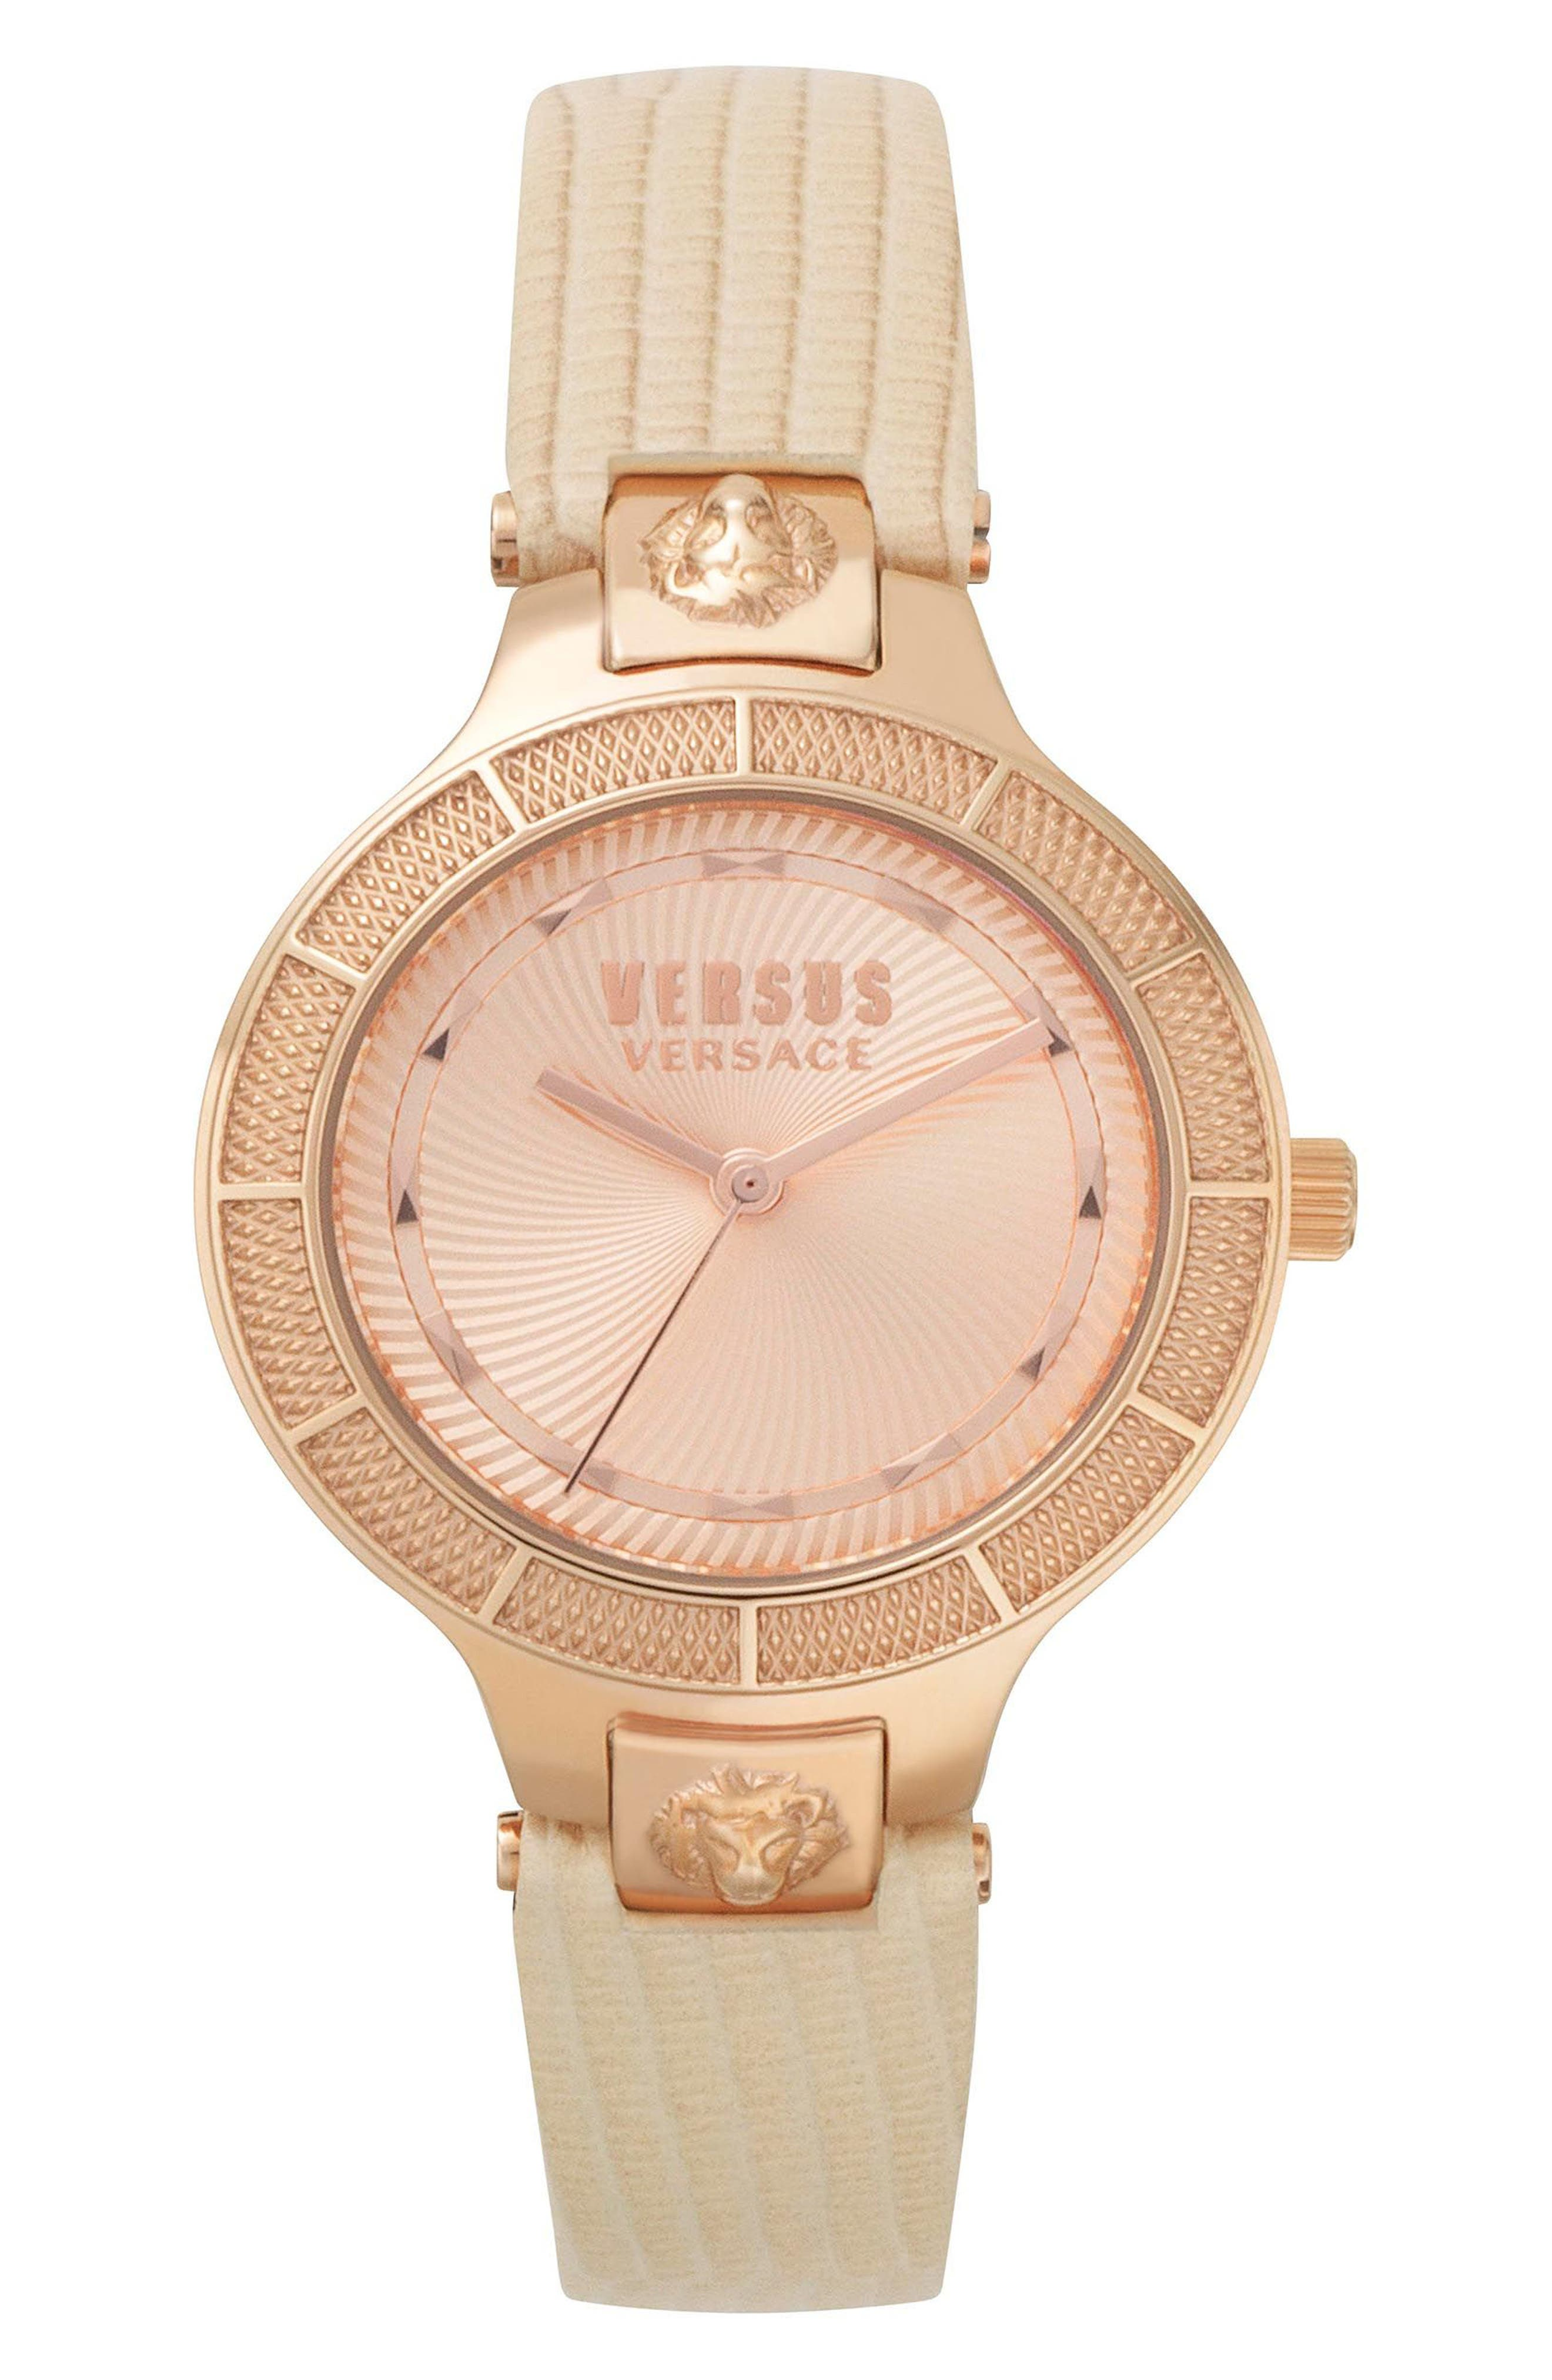 VERSUS VERSACE, Claremont Leather Strap Watch, 32mm, Main thumbnail 1, color, PINK/ ROSE GOLD